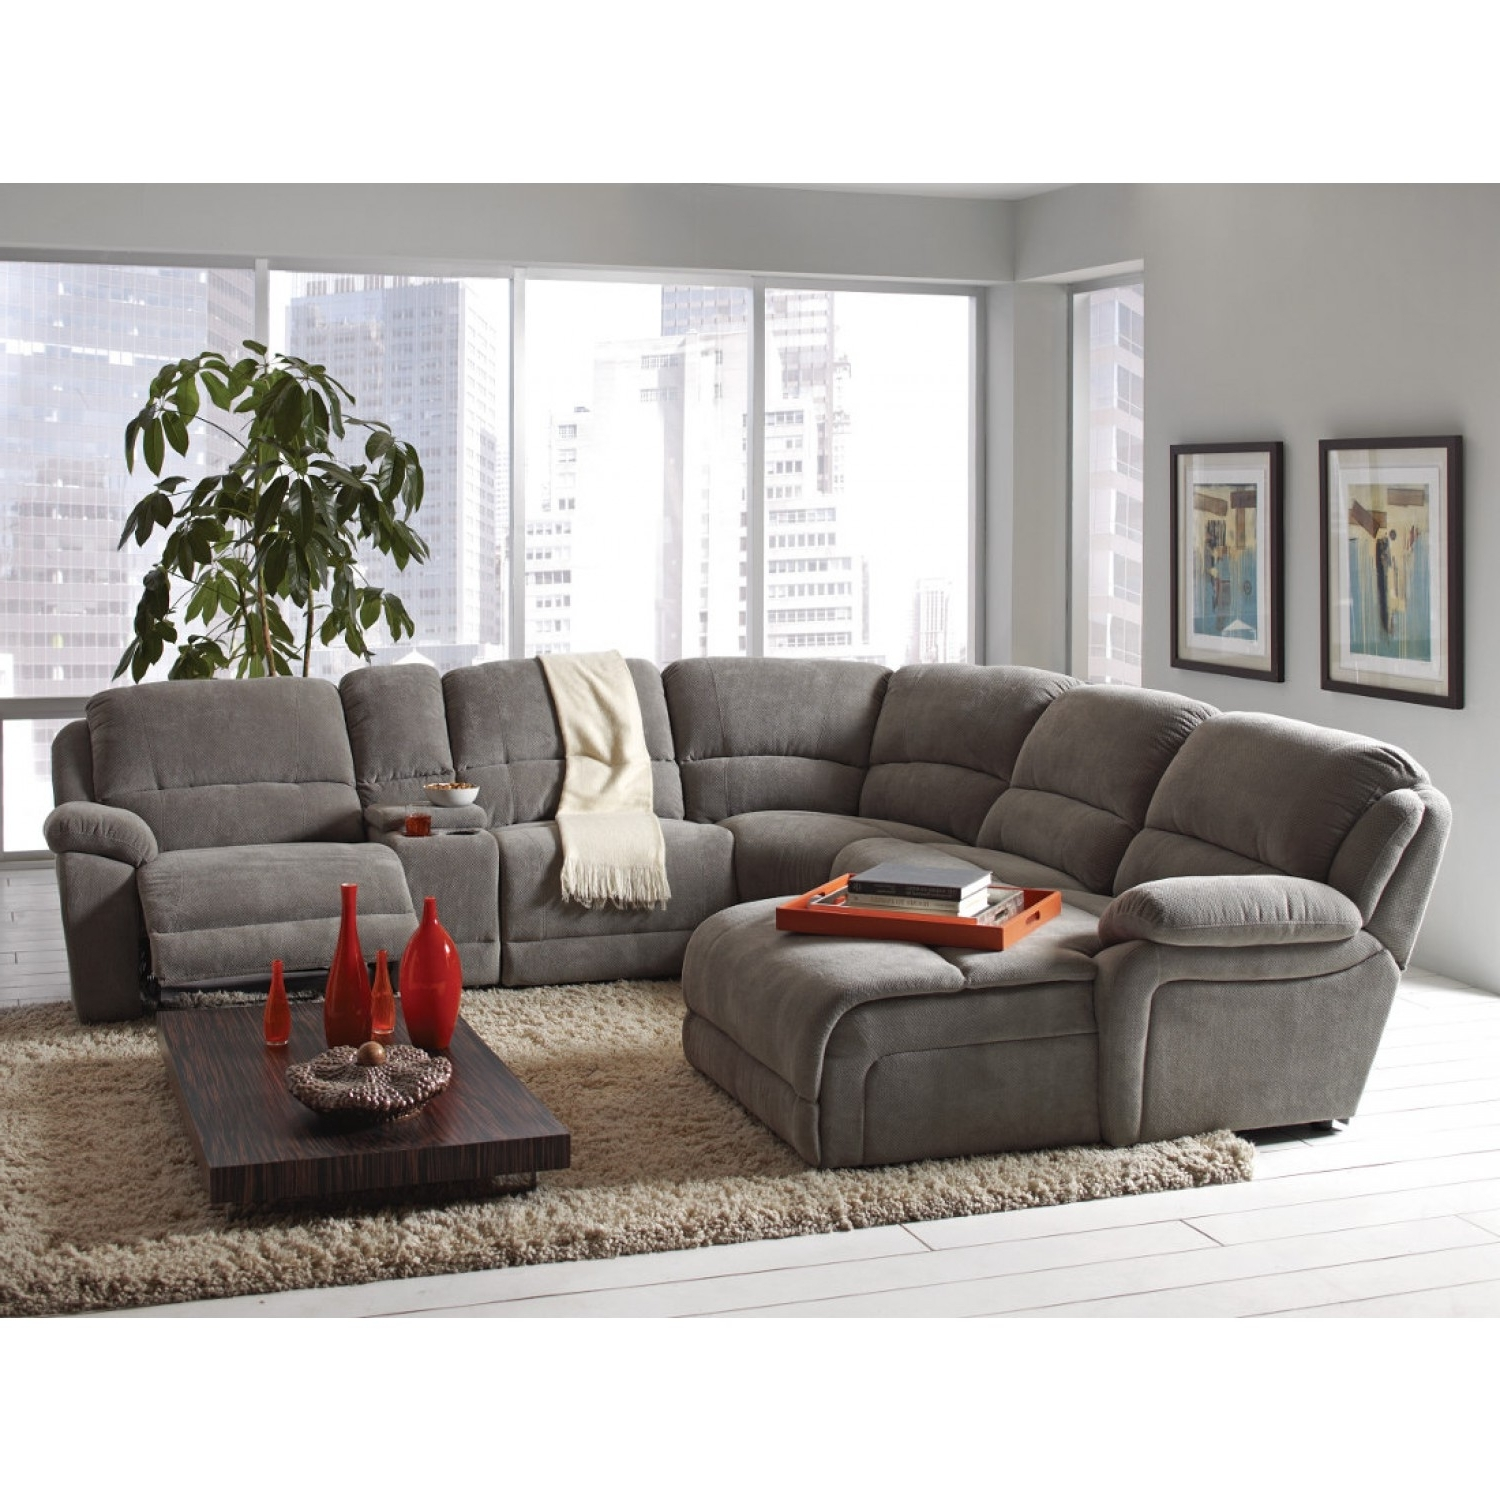 Coaster Mackenzie Silver 6 Piece Reclining Sectional Sofa With Regarding Recent Sectional Sofas With Cup Holders (Gallery 12 of 15)